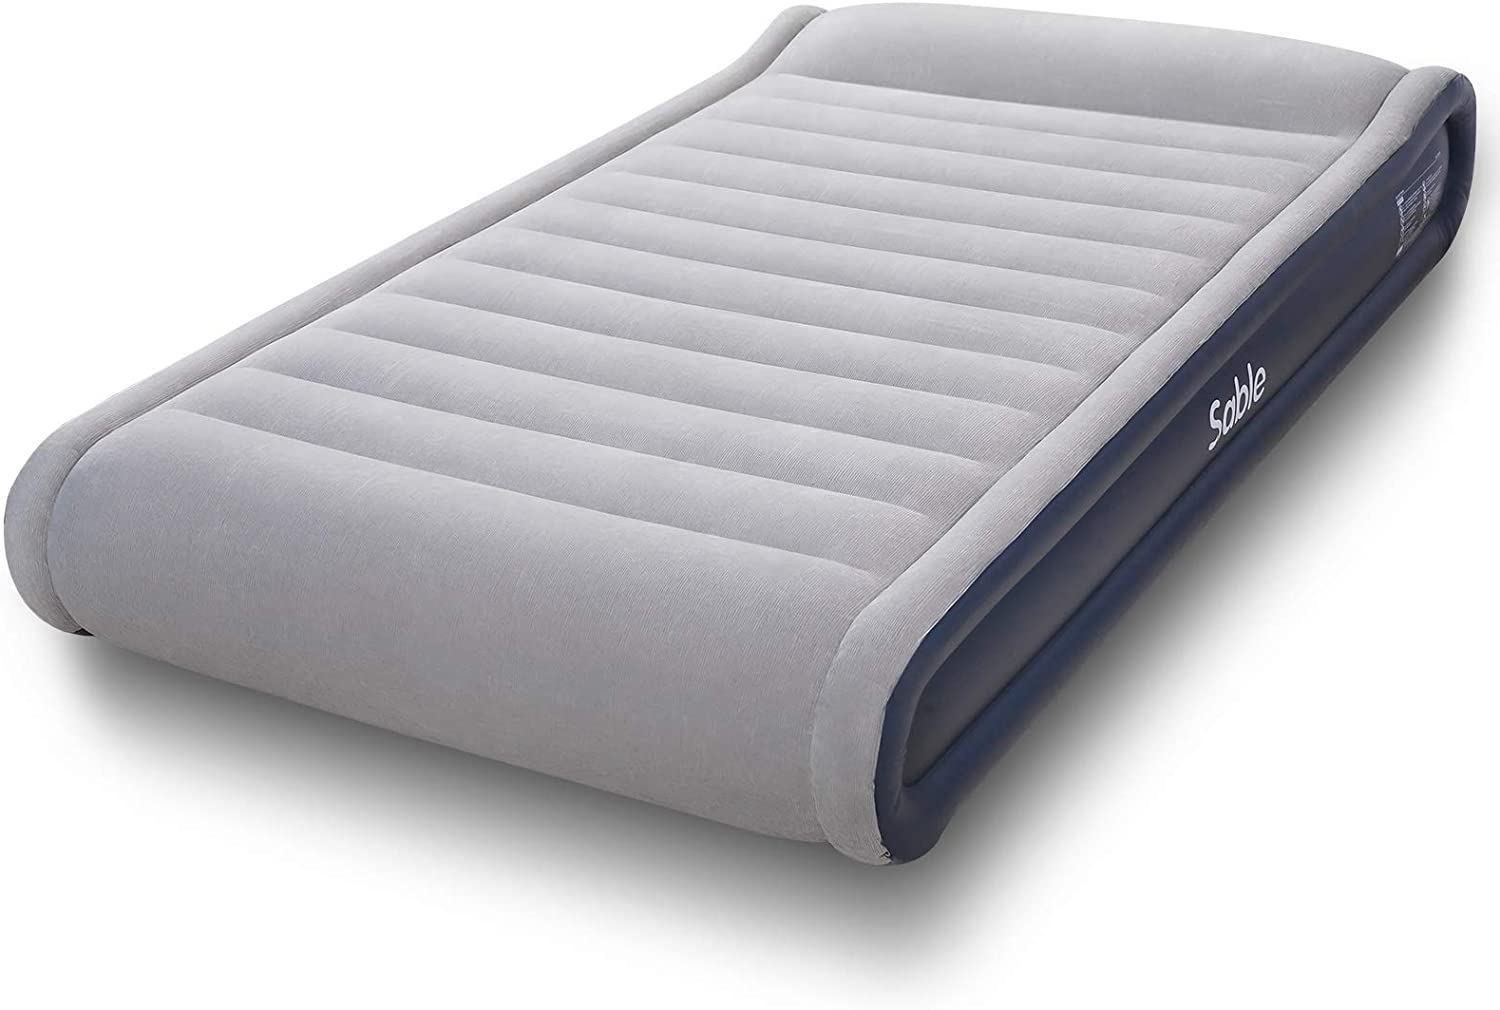 Full Size Air Mattress With Built In Pump